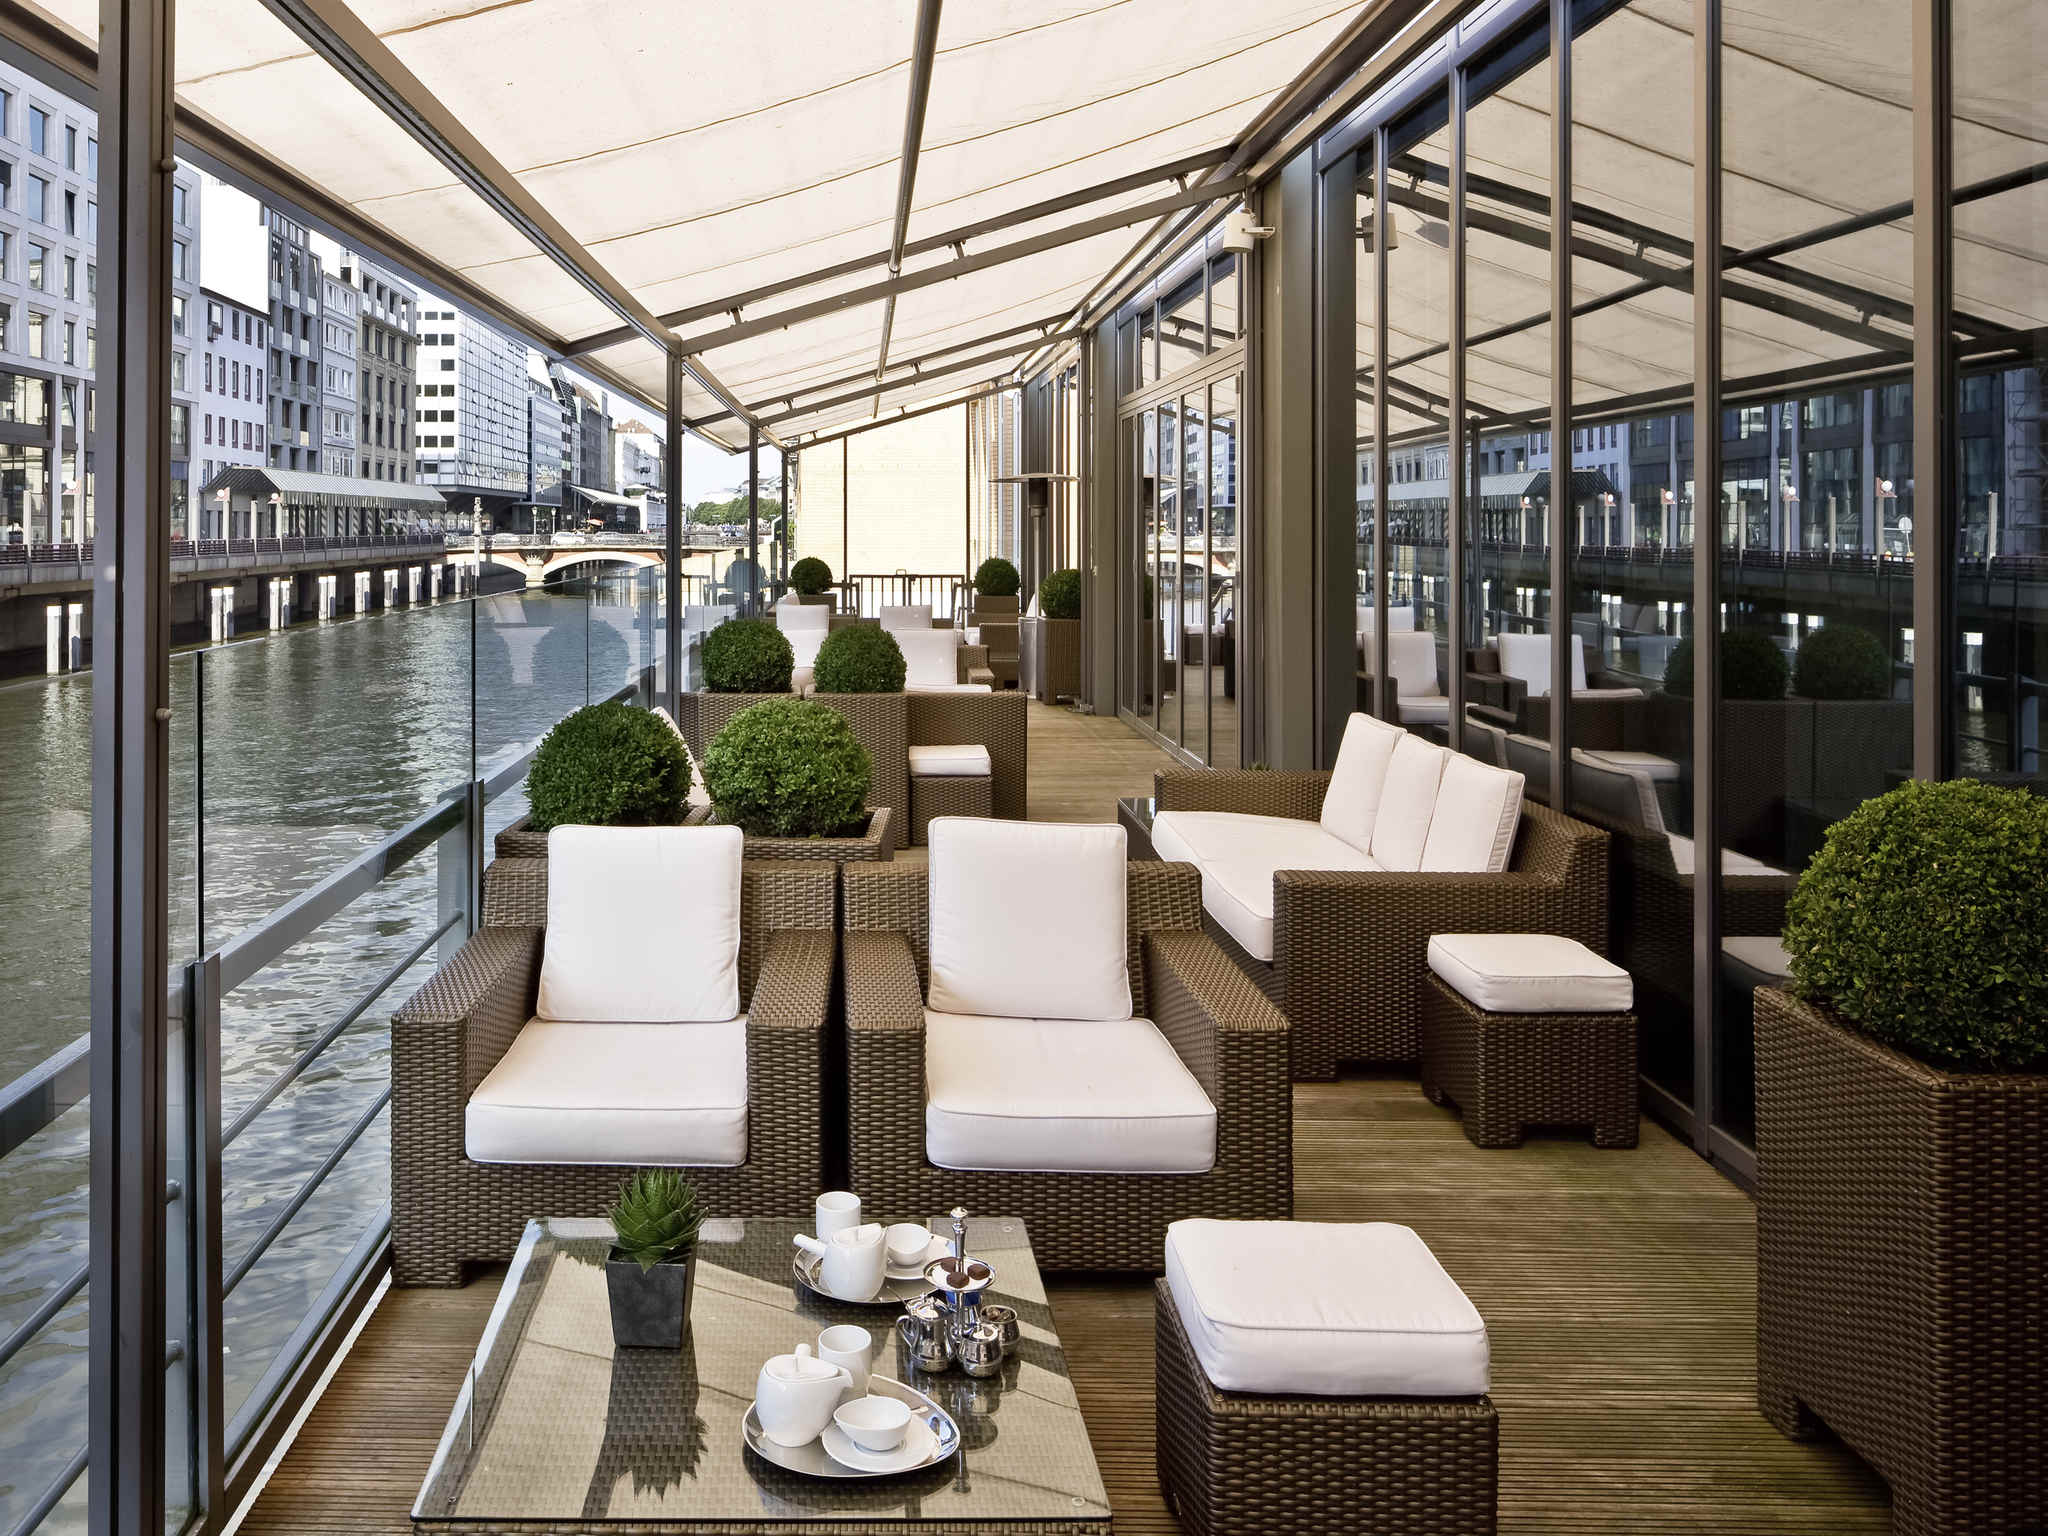 Hotel Sofitel Hamburg Alter Wal.Book your hotel now! Wifi!